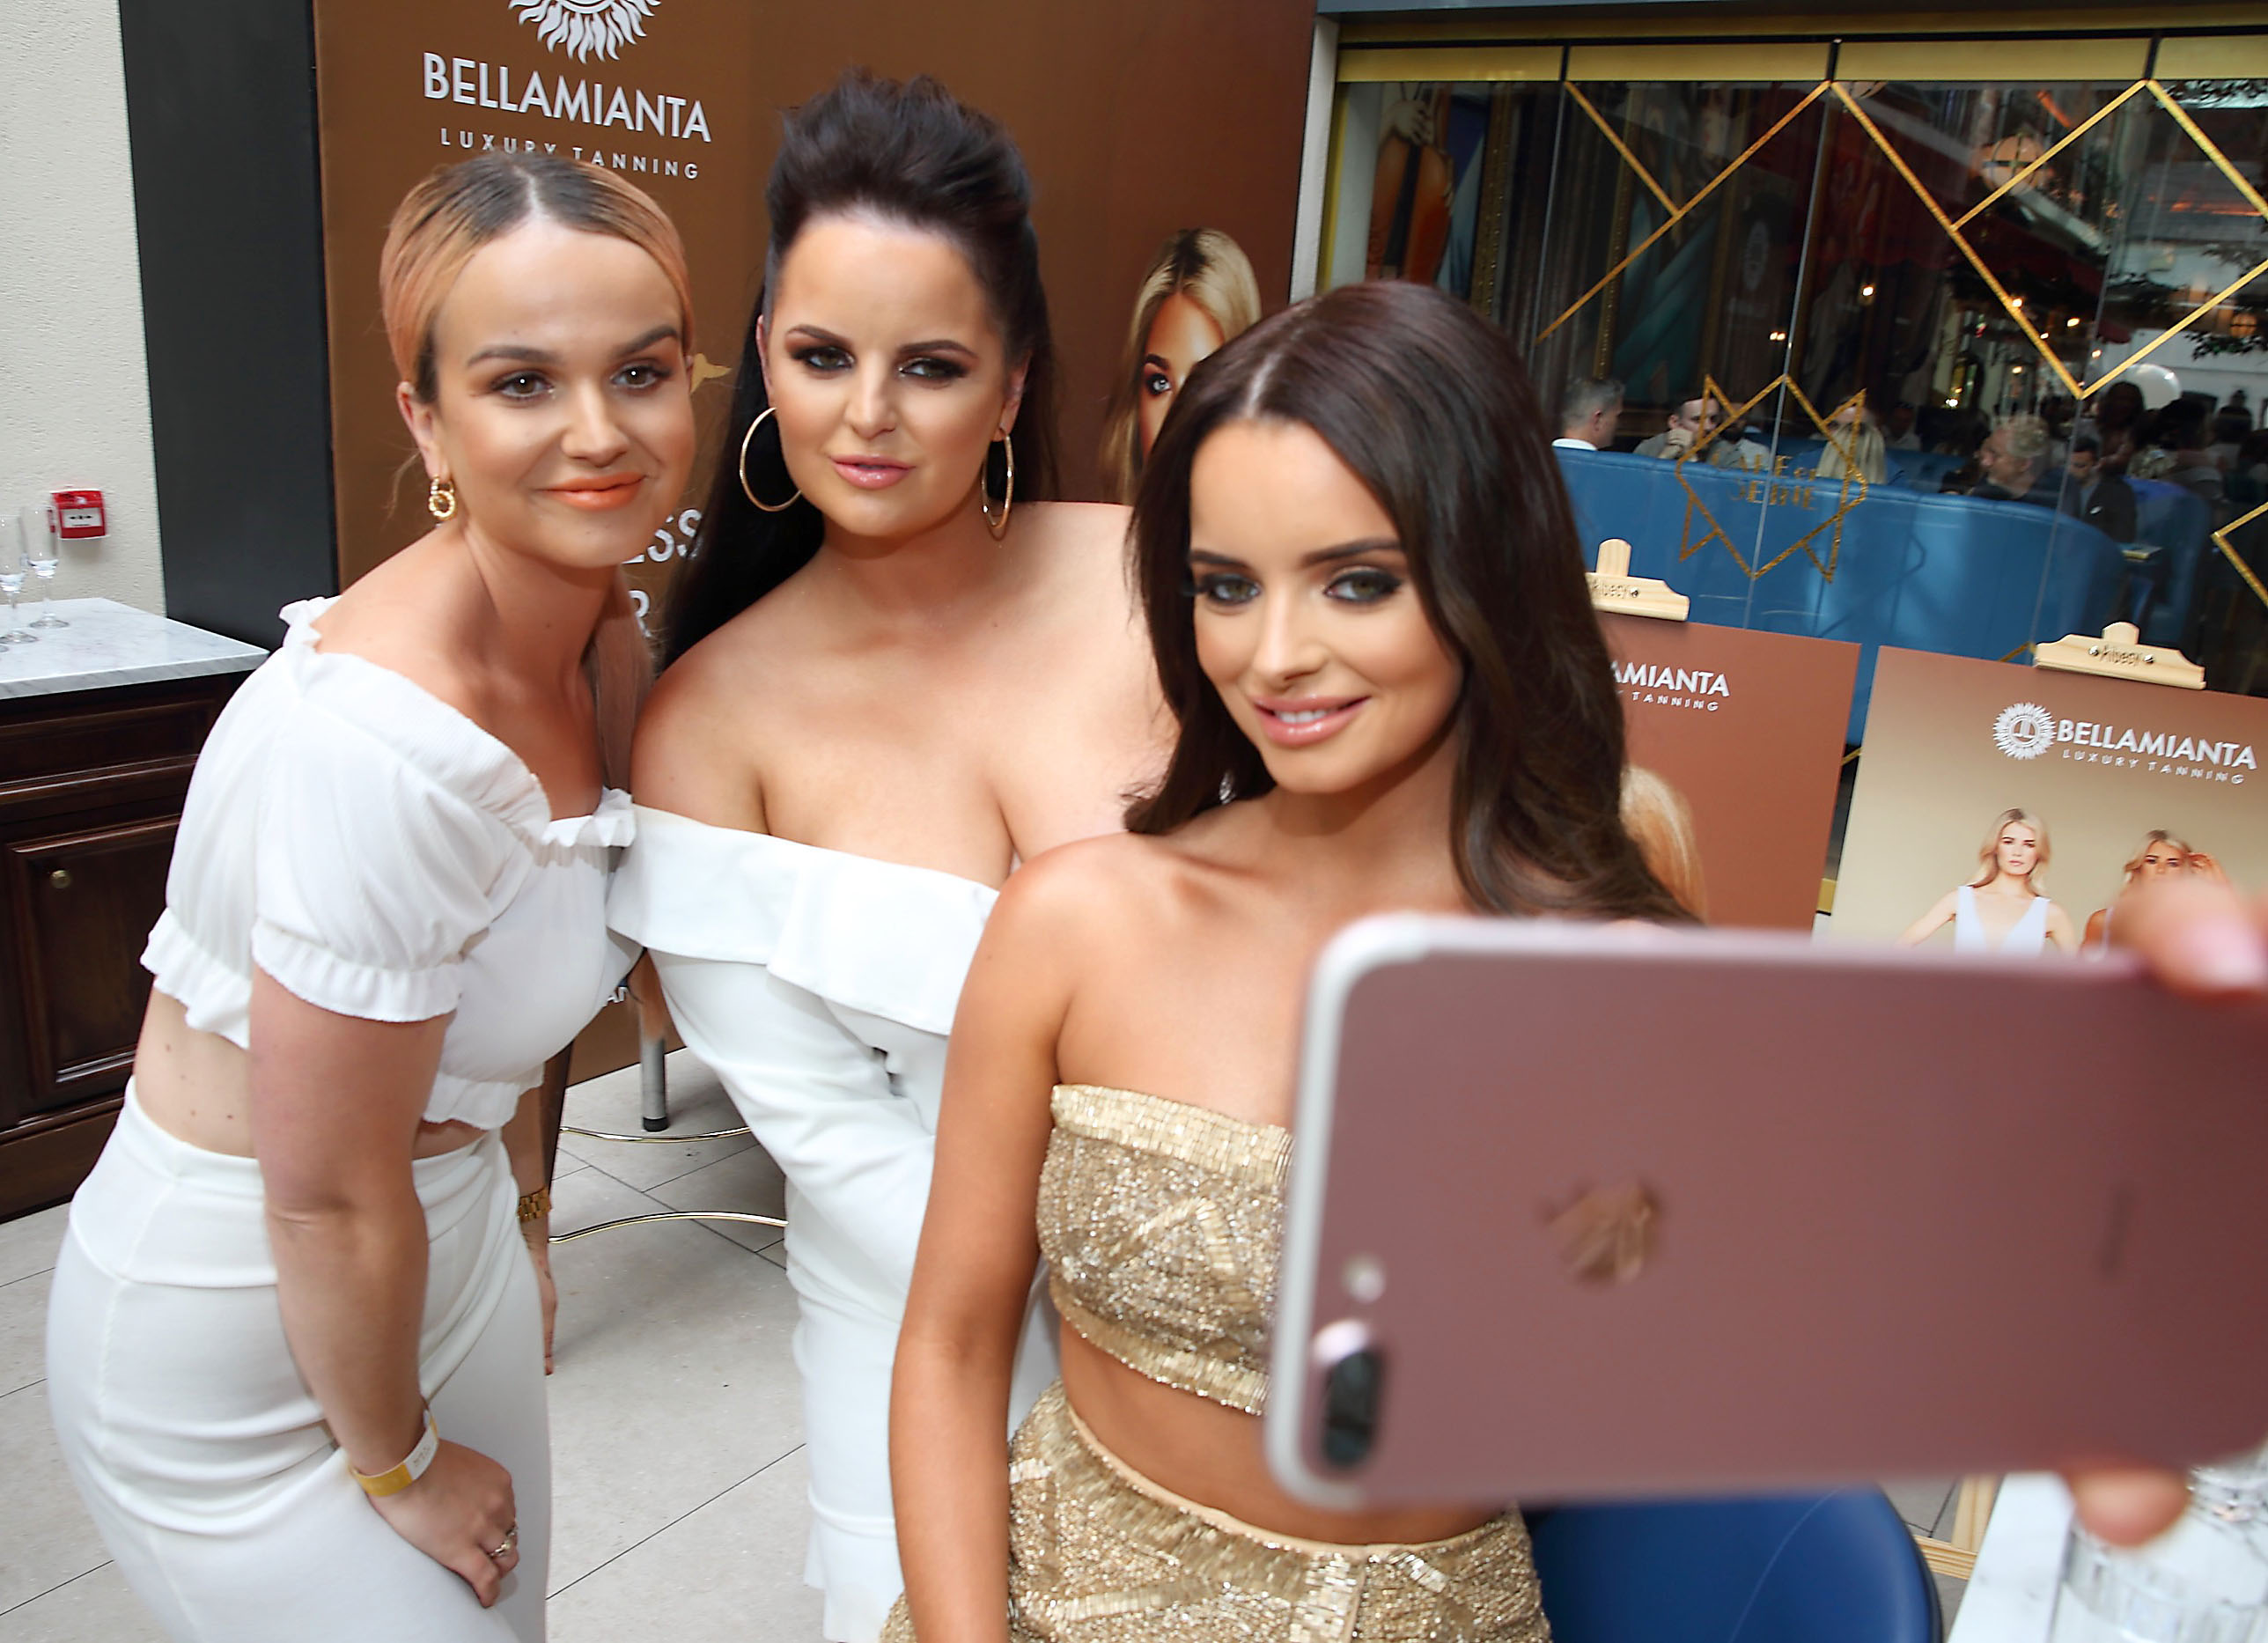 Leah Max, Becki Higgins and  Maura Higgins pictured at the  Bellamianta Luxury Tan  Launch Party at Cafe En Seine,Dublin   Pictures: Brian McEvoy Photography